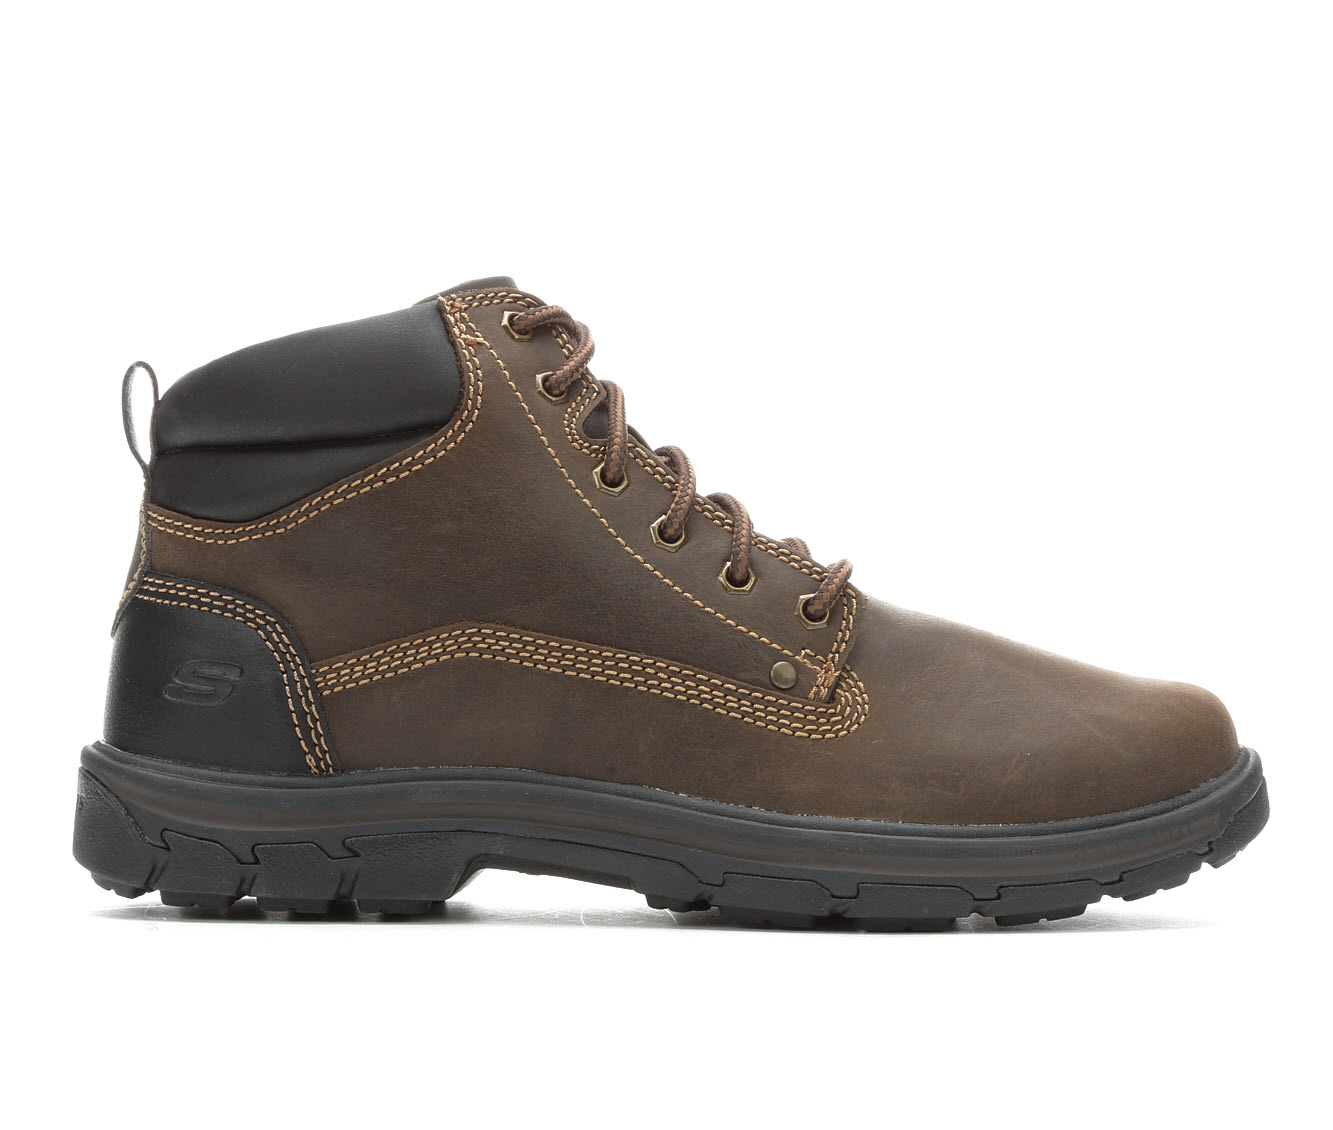 Skechers Garnet 65573 Men's Boots (Brown Leather)